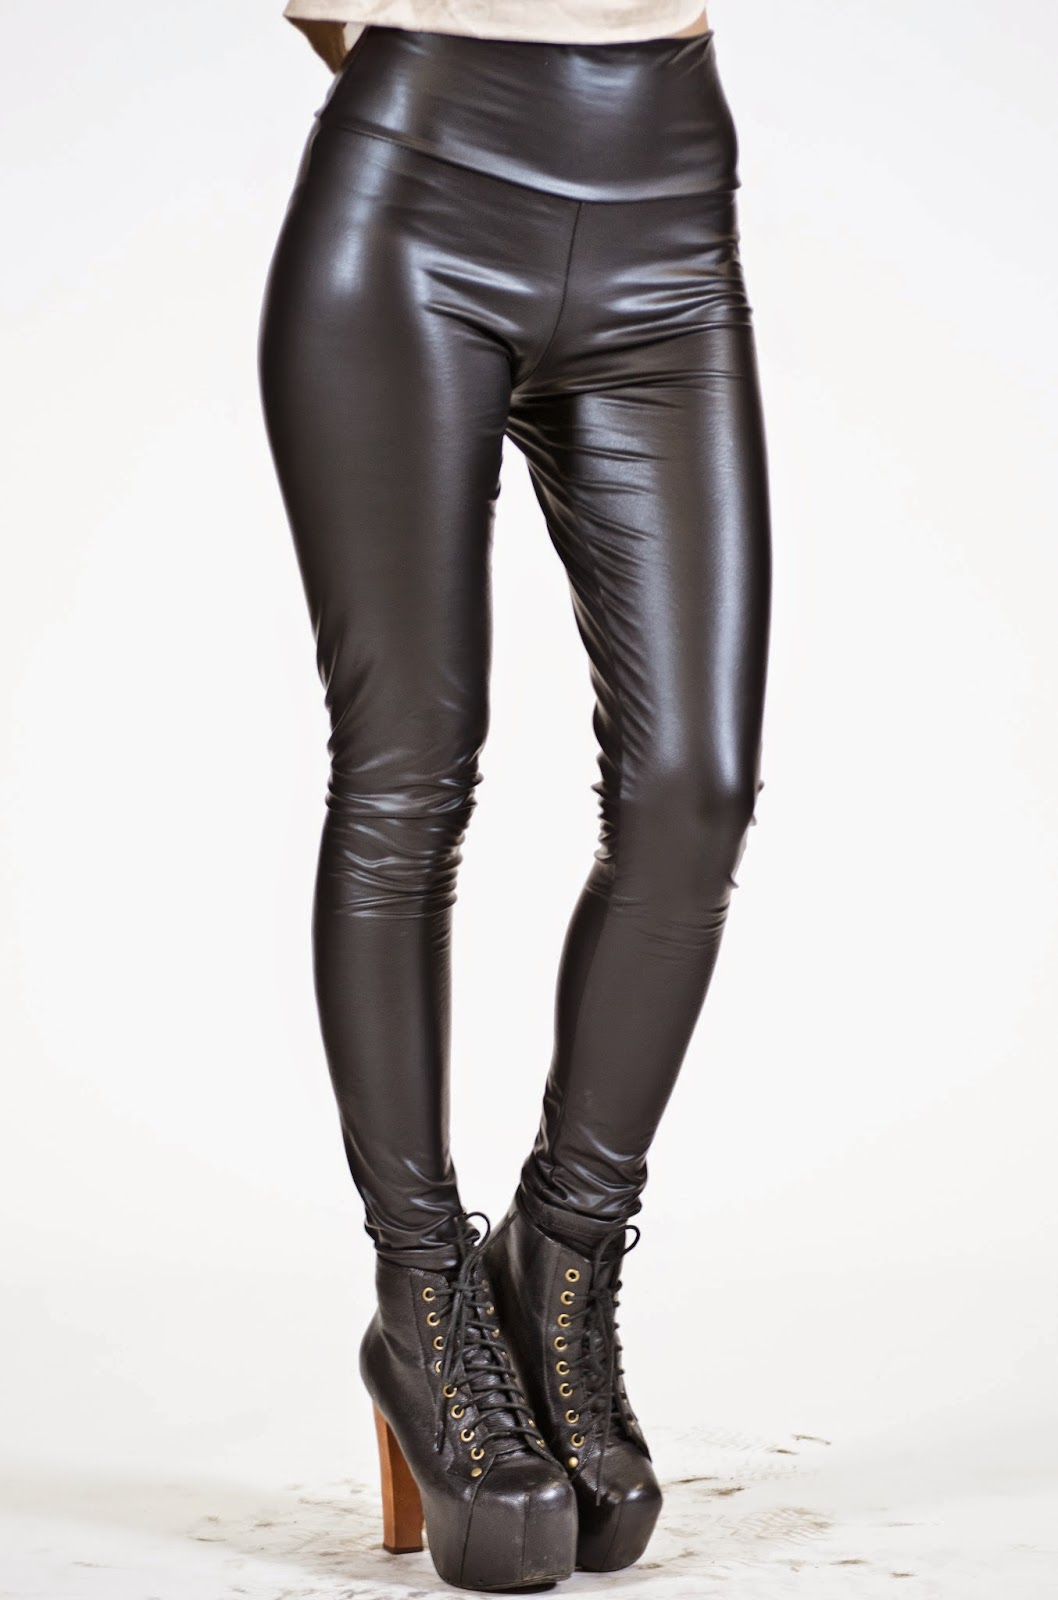 Hot And Attractive Liquid Leggings Photos For Girls